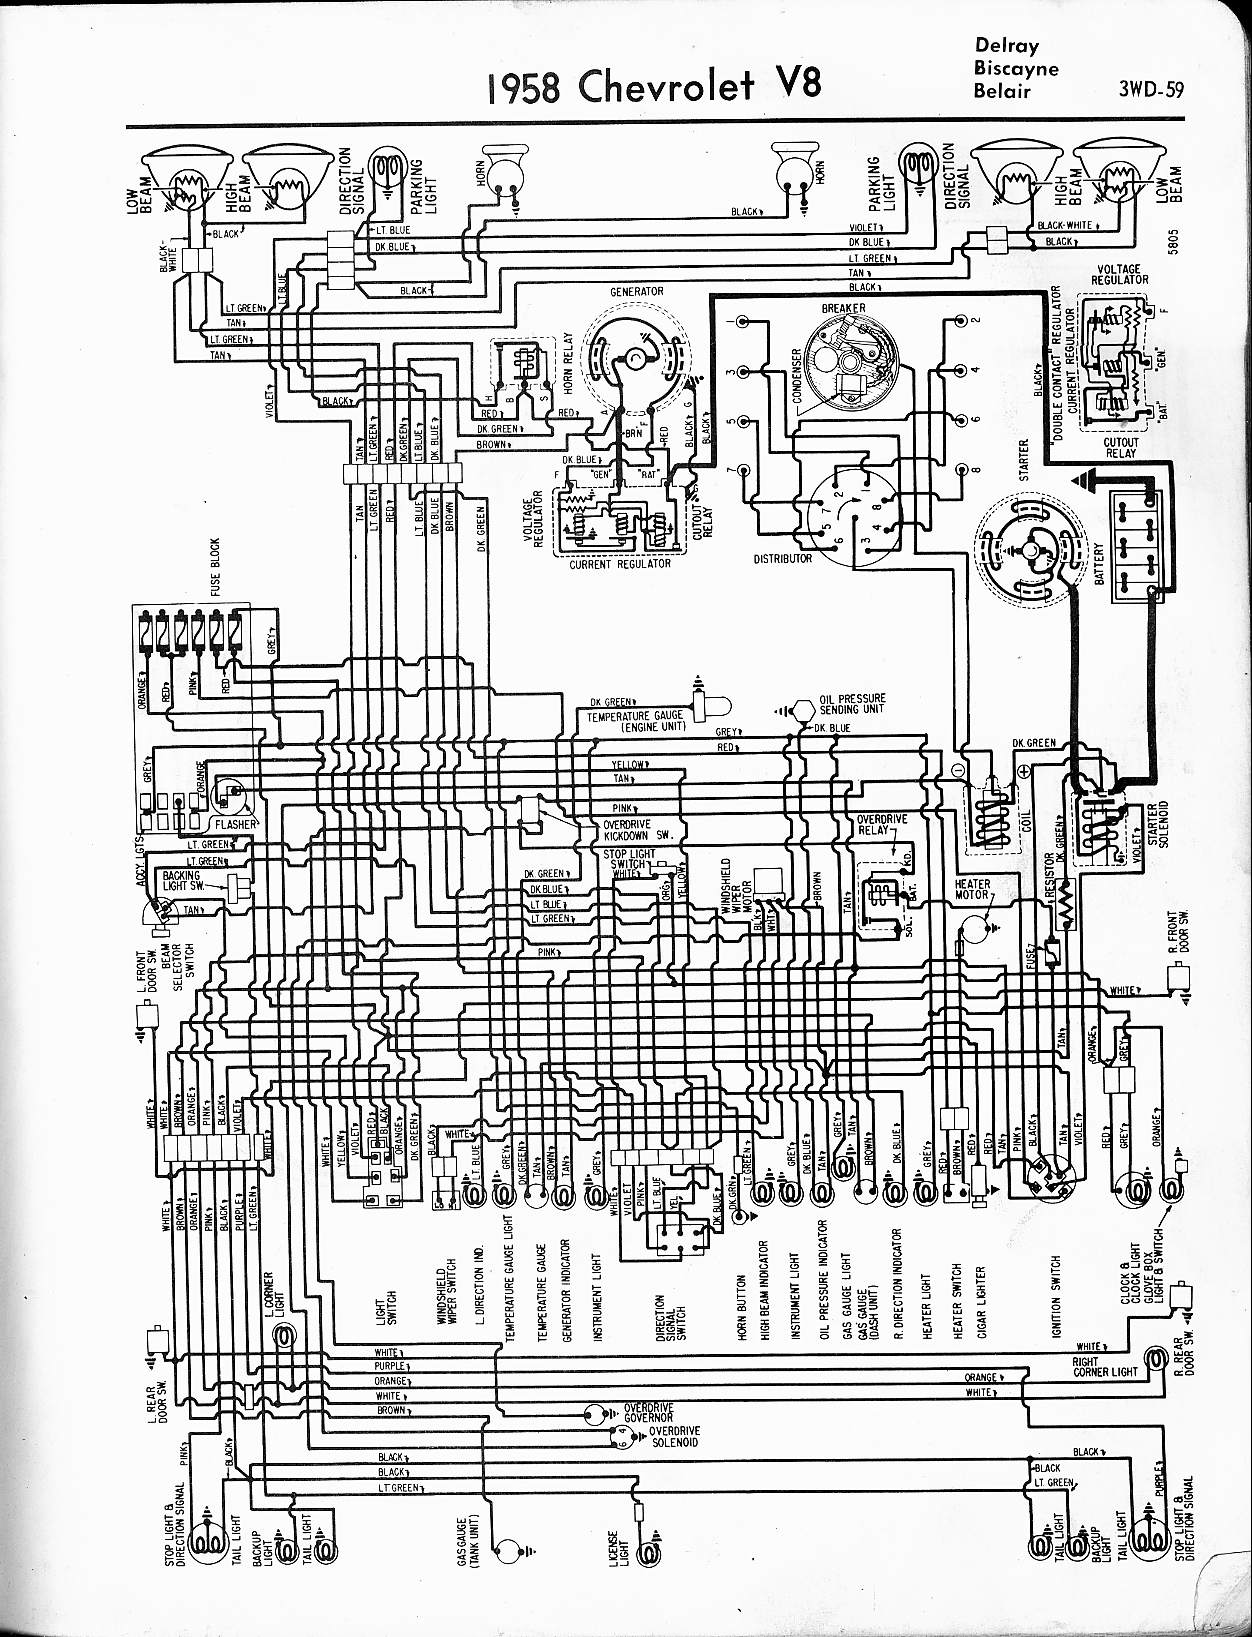 MWireChev58_3WD 059 57 65 chevy wiring diagrams chevy wiring schematics at bayanpartner.co